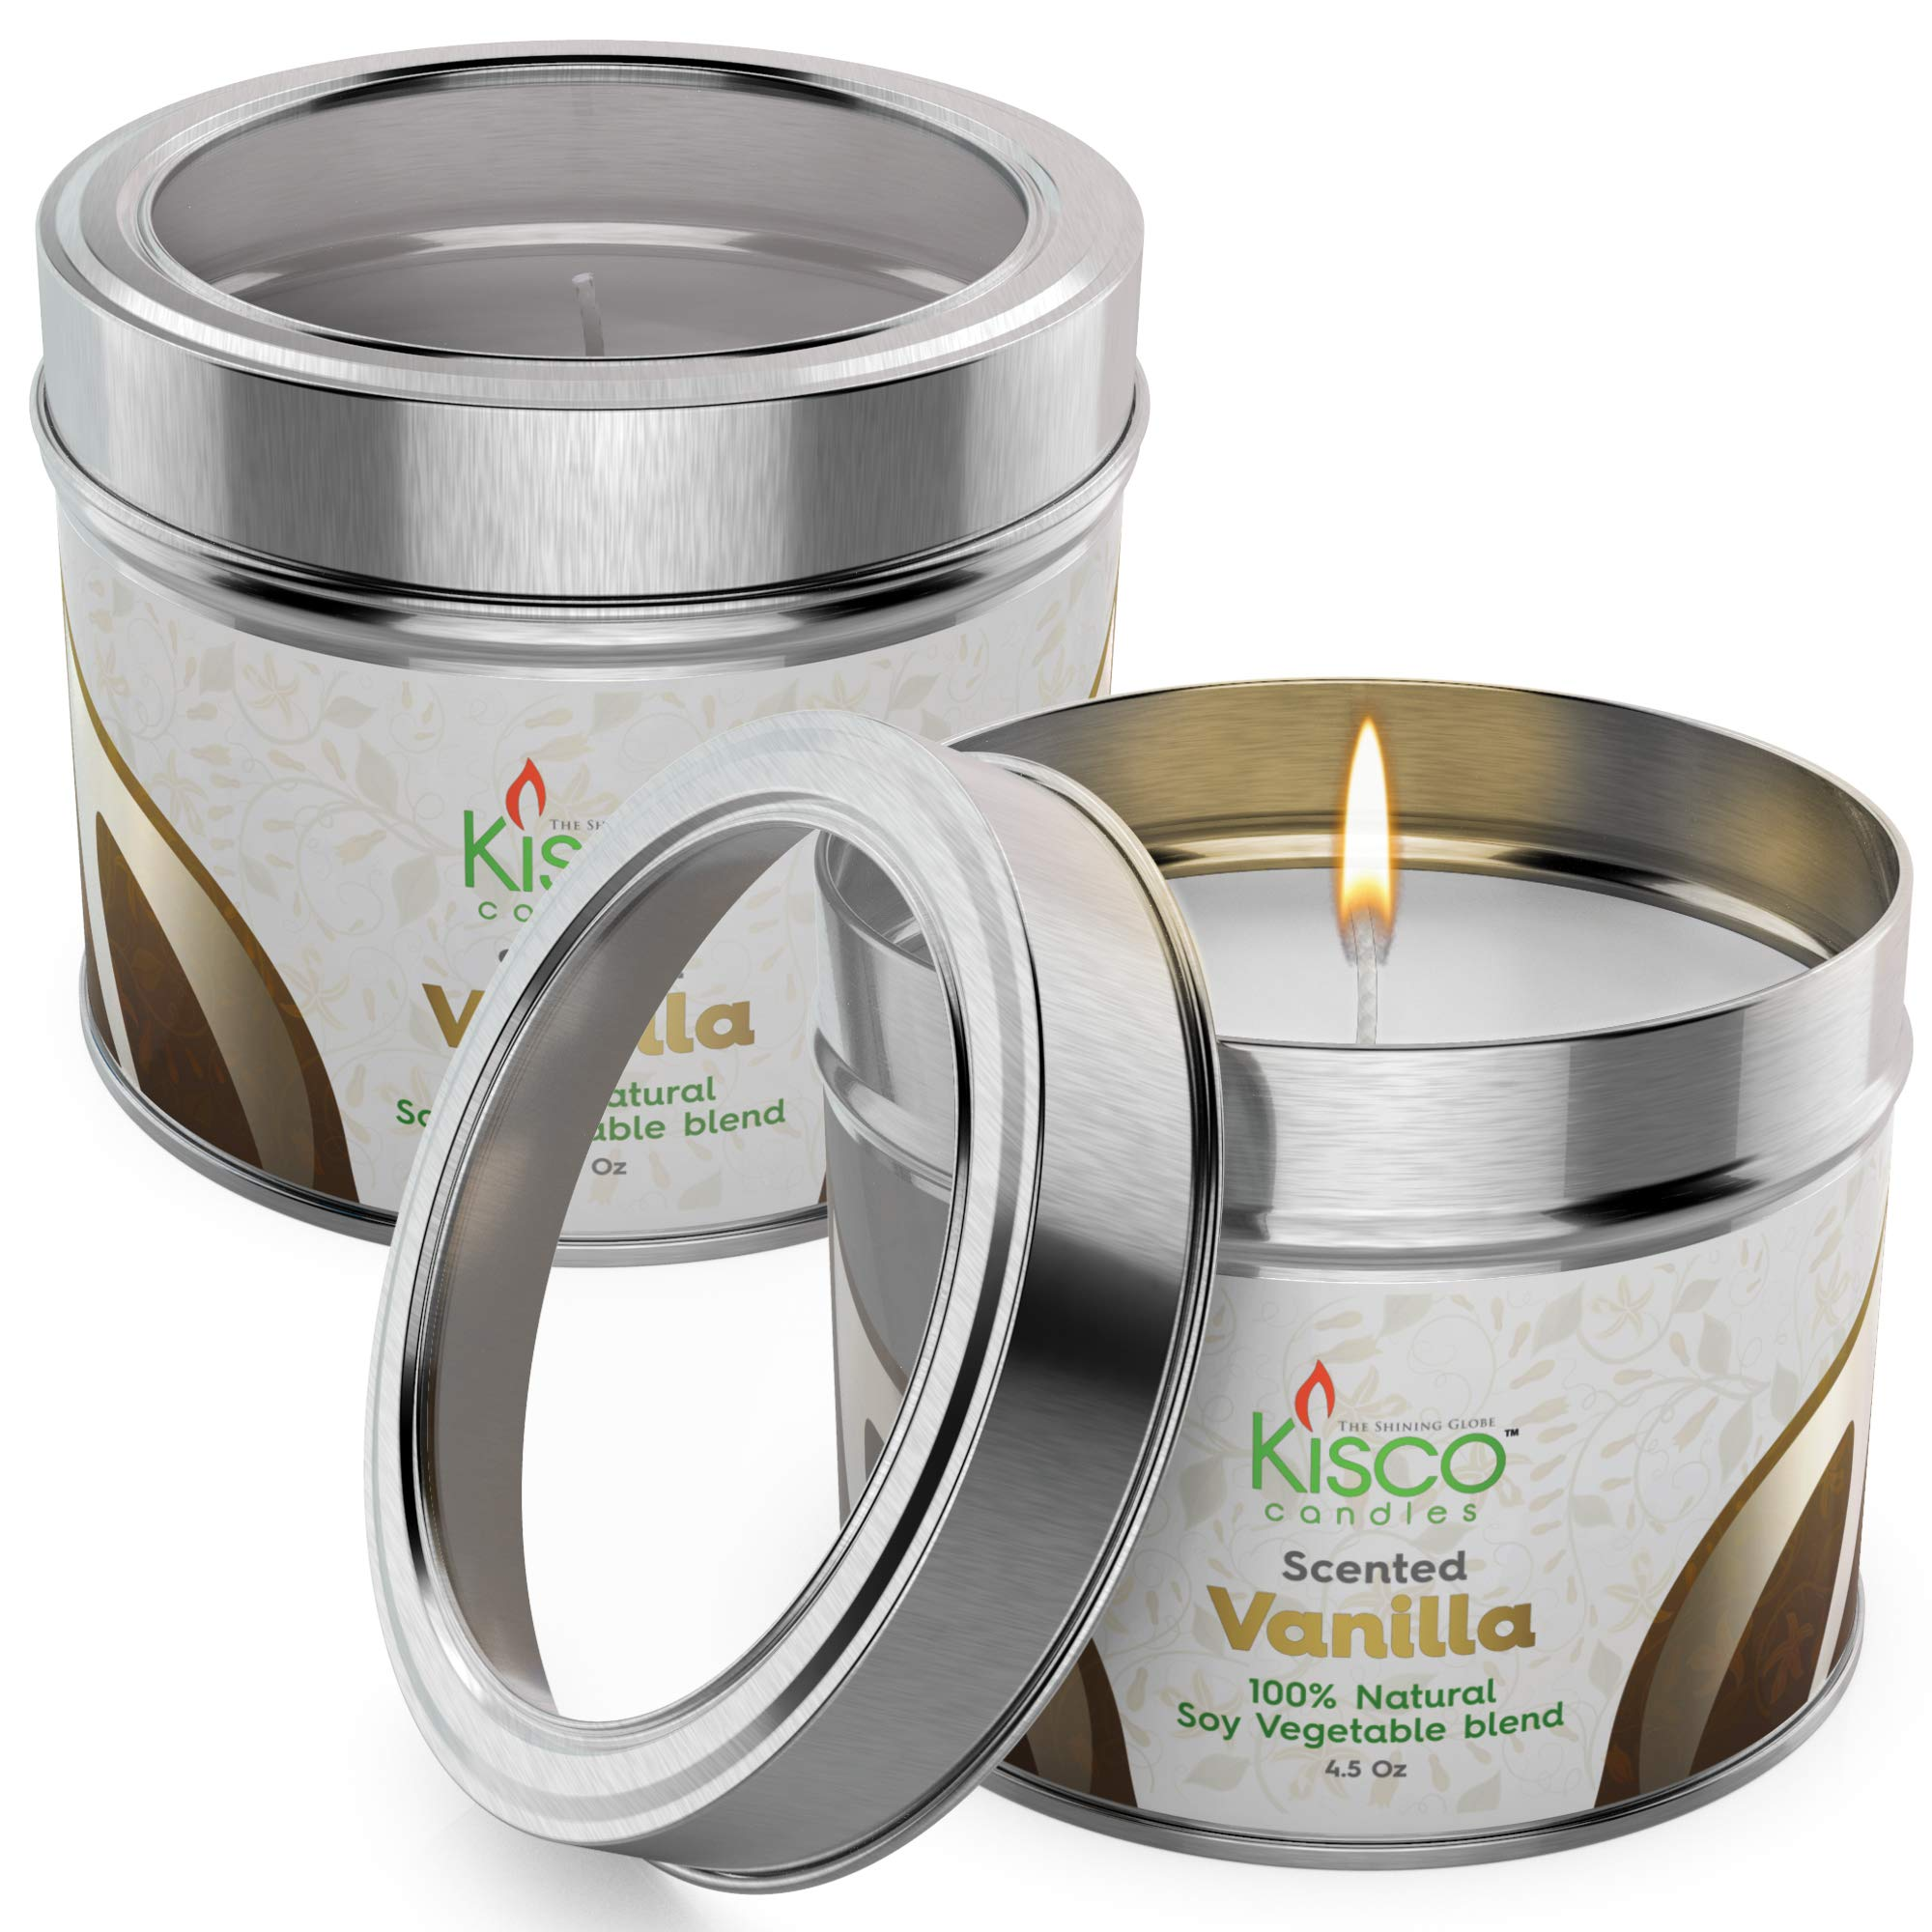 KISCO CANDLES Luxury Scented Candles, 2 Pack – 100% Natural Soy Wax – Beautiful Gift Set Tins – Soothing, Relaxing Light Vanilla Fragrance - Aromatherapy, Decoration, Parties - 4.5oz